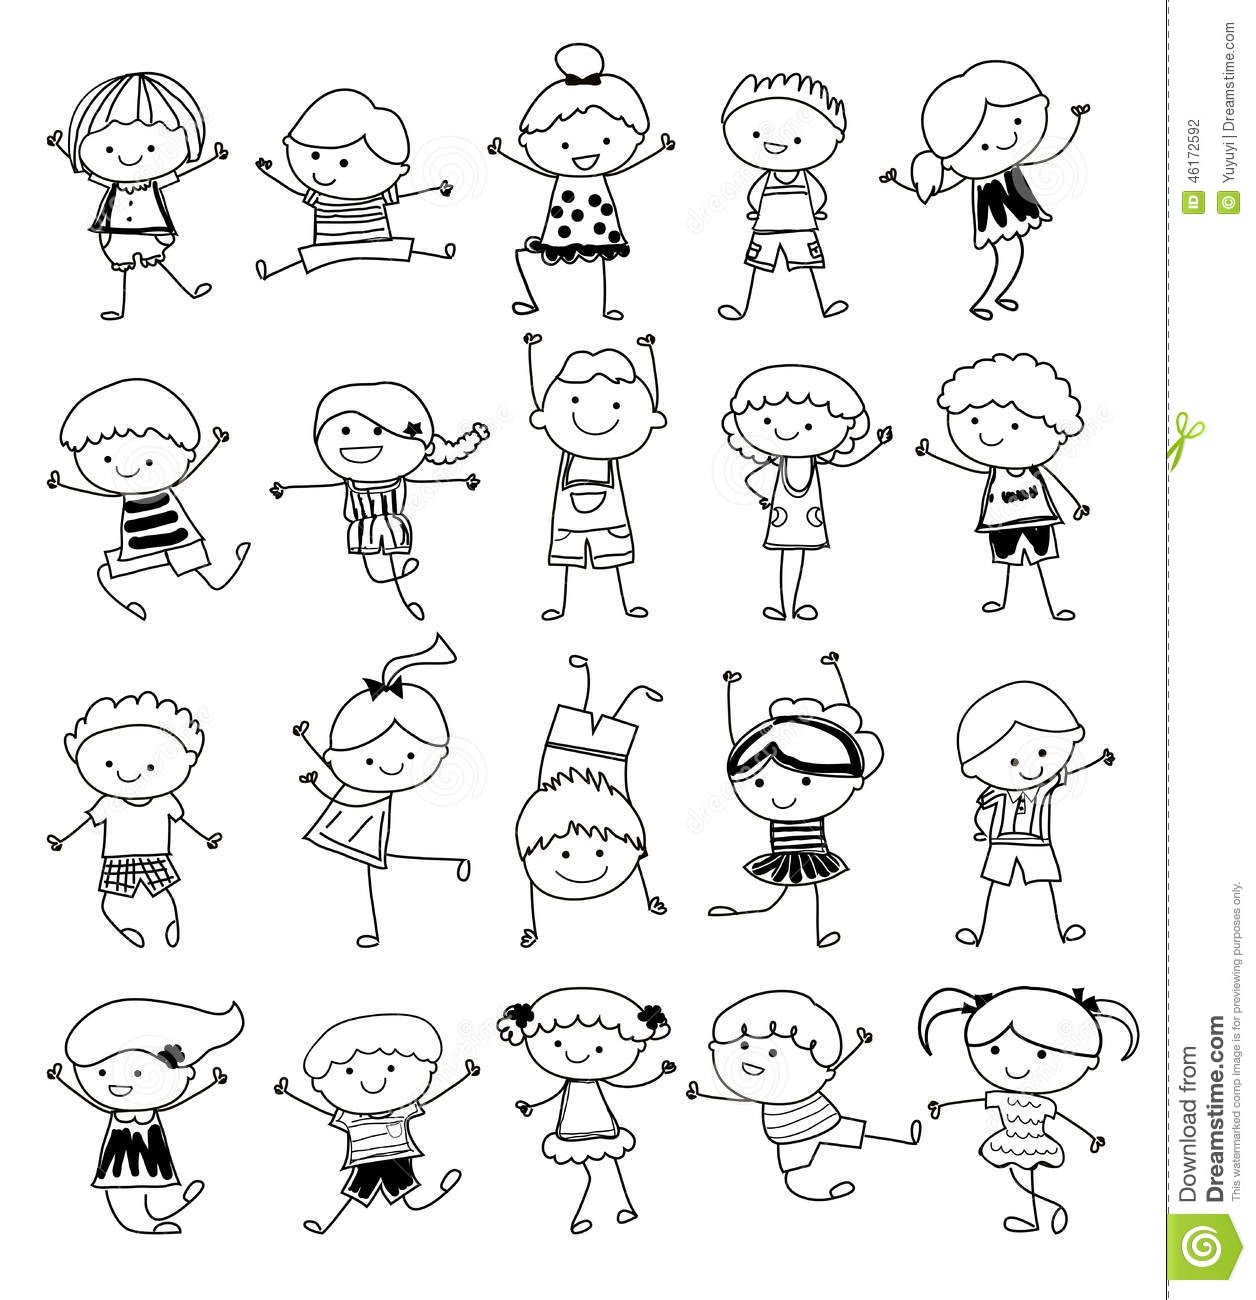 group of kidsdrawing sketch stock photography - Drawing Sketch For Kids